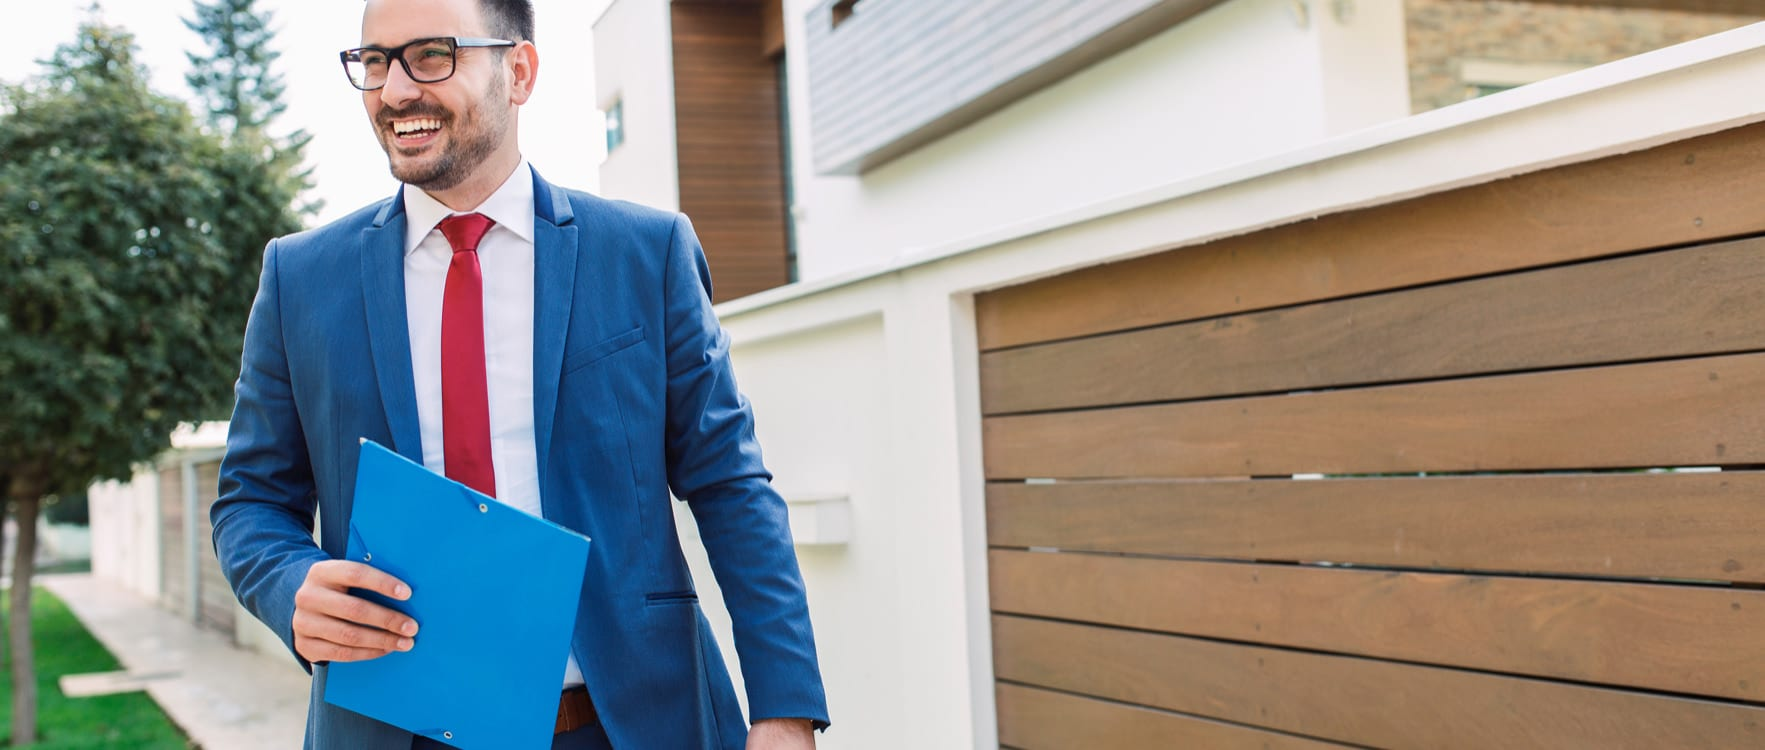 The Best Guide To Jobs For A Real Estate Lawyer